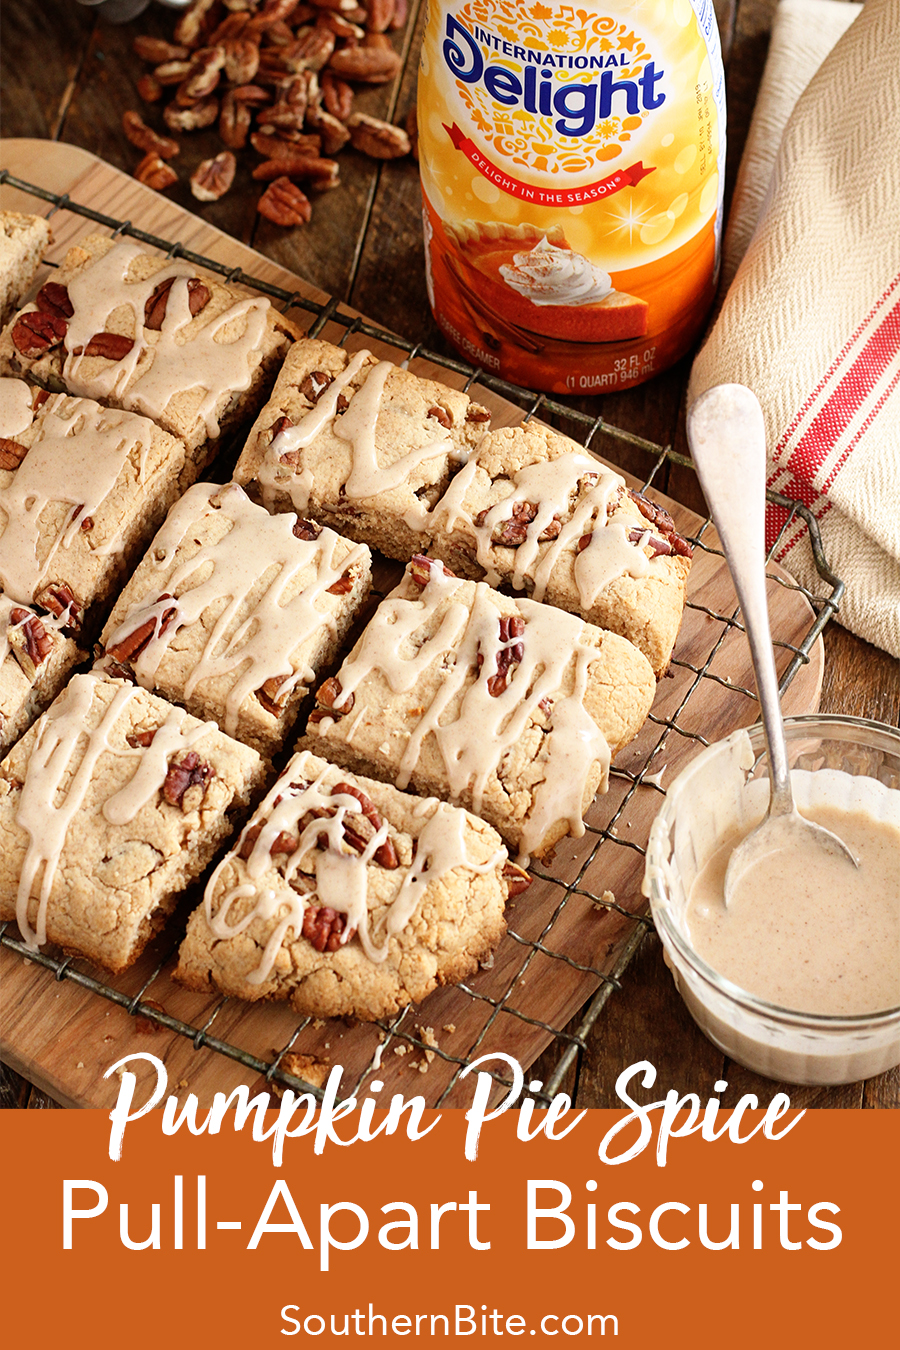 These Pumpkin Pie Spice Pull-Apart Biscuits are the perfect taste of fall. Plus, it's such an easy recipe!